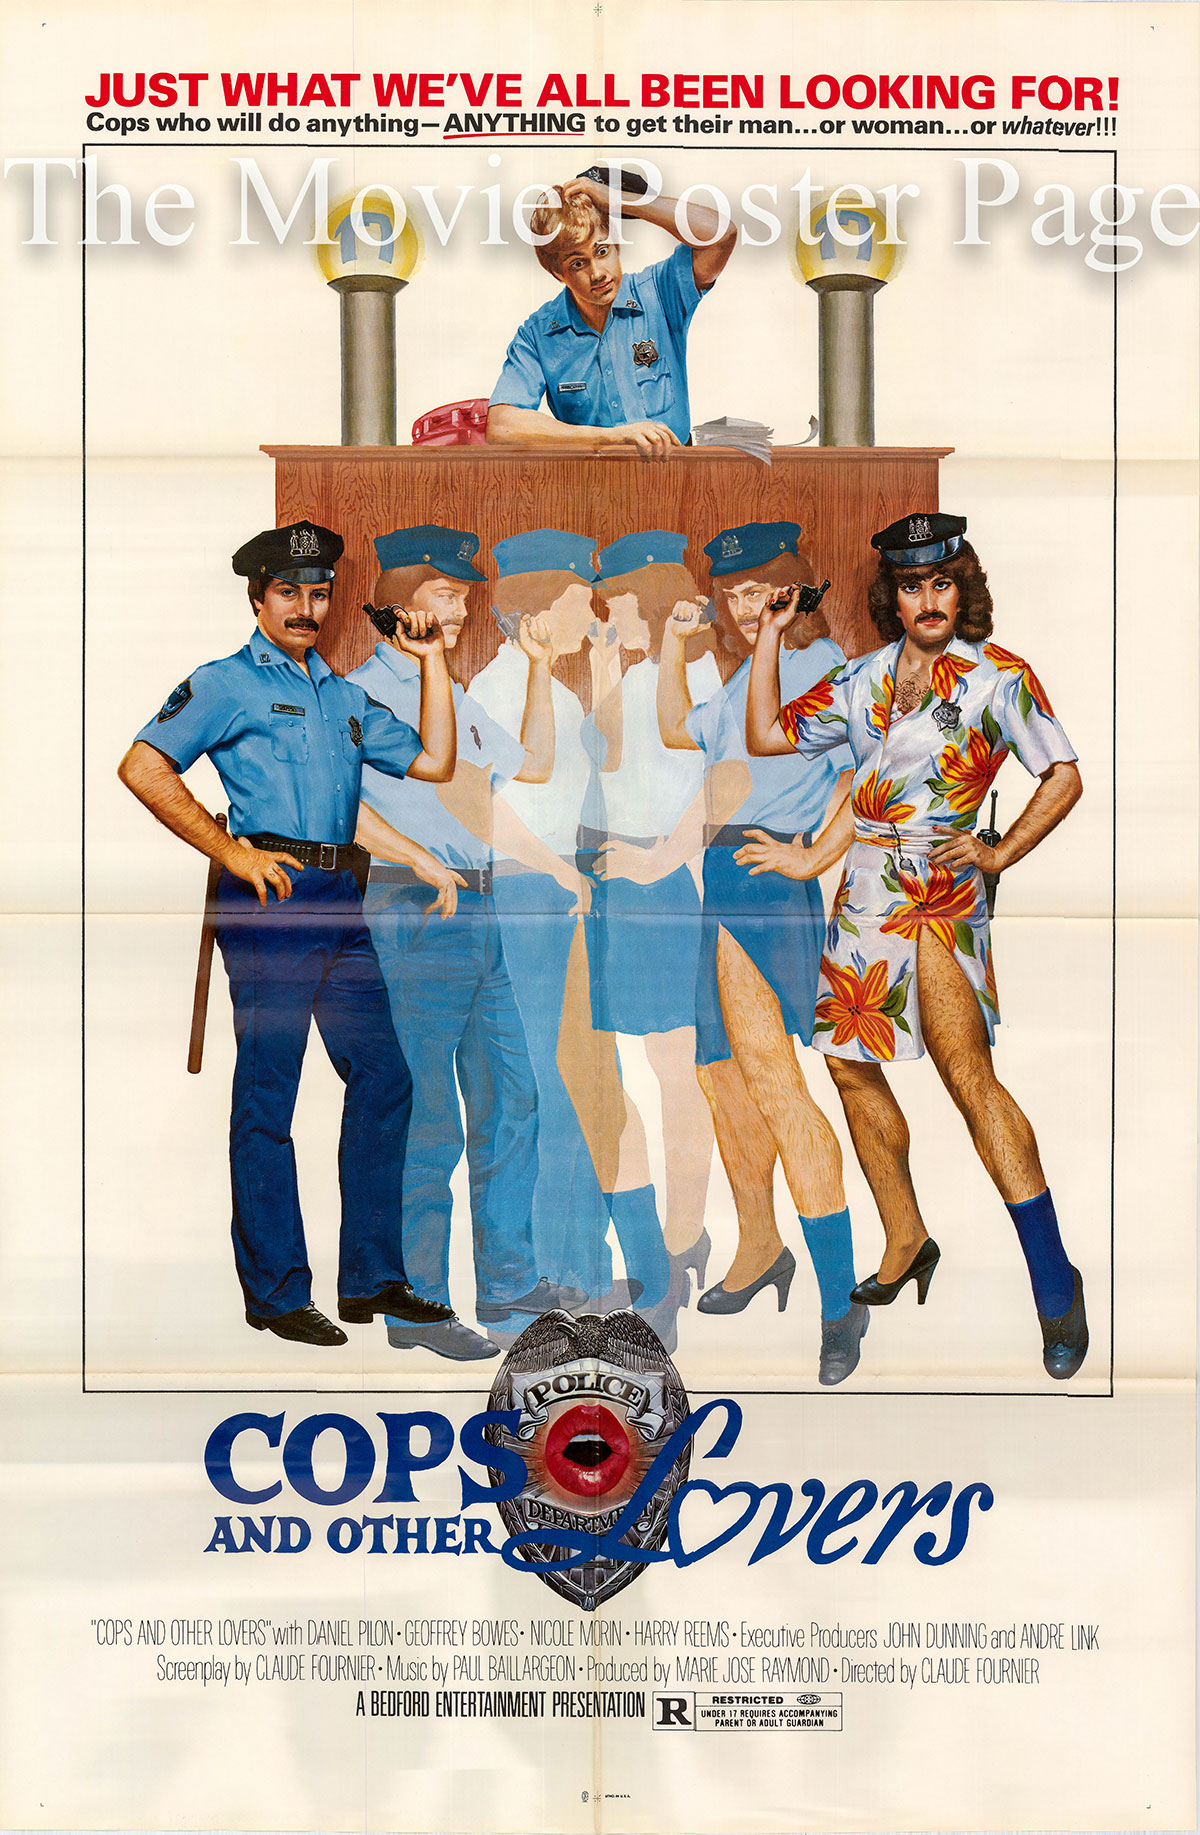 Pictured is a US promotional one-sheet poster for the 1980 Claude Fournier film Cops and Other Lovers starring Harry Reems.